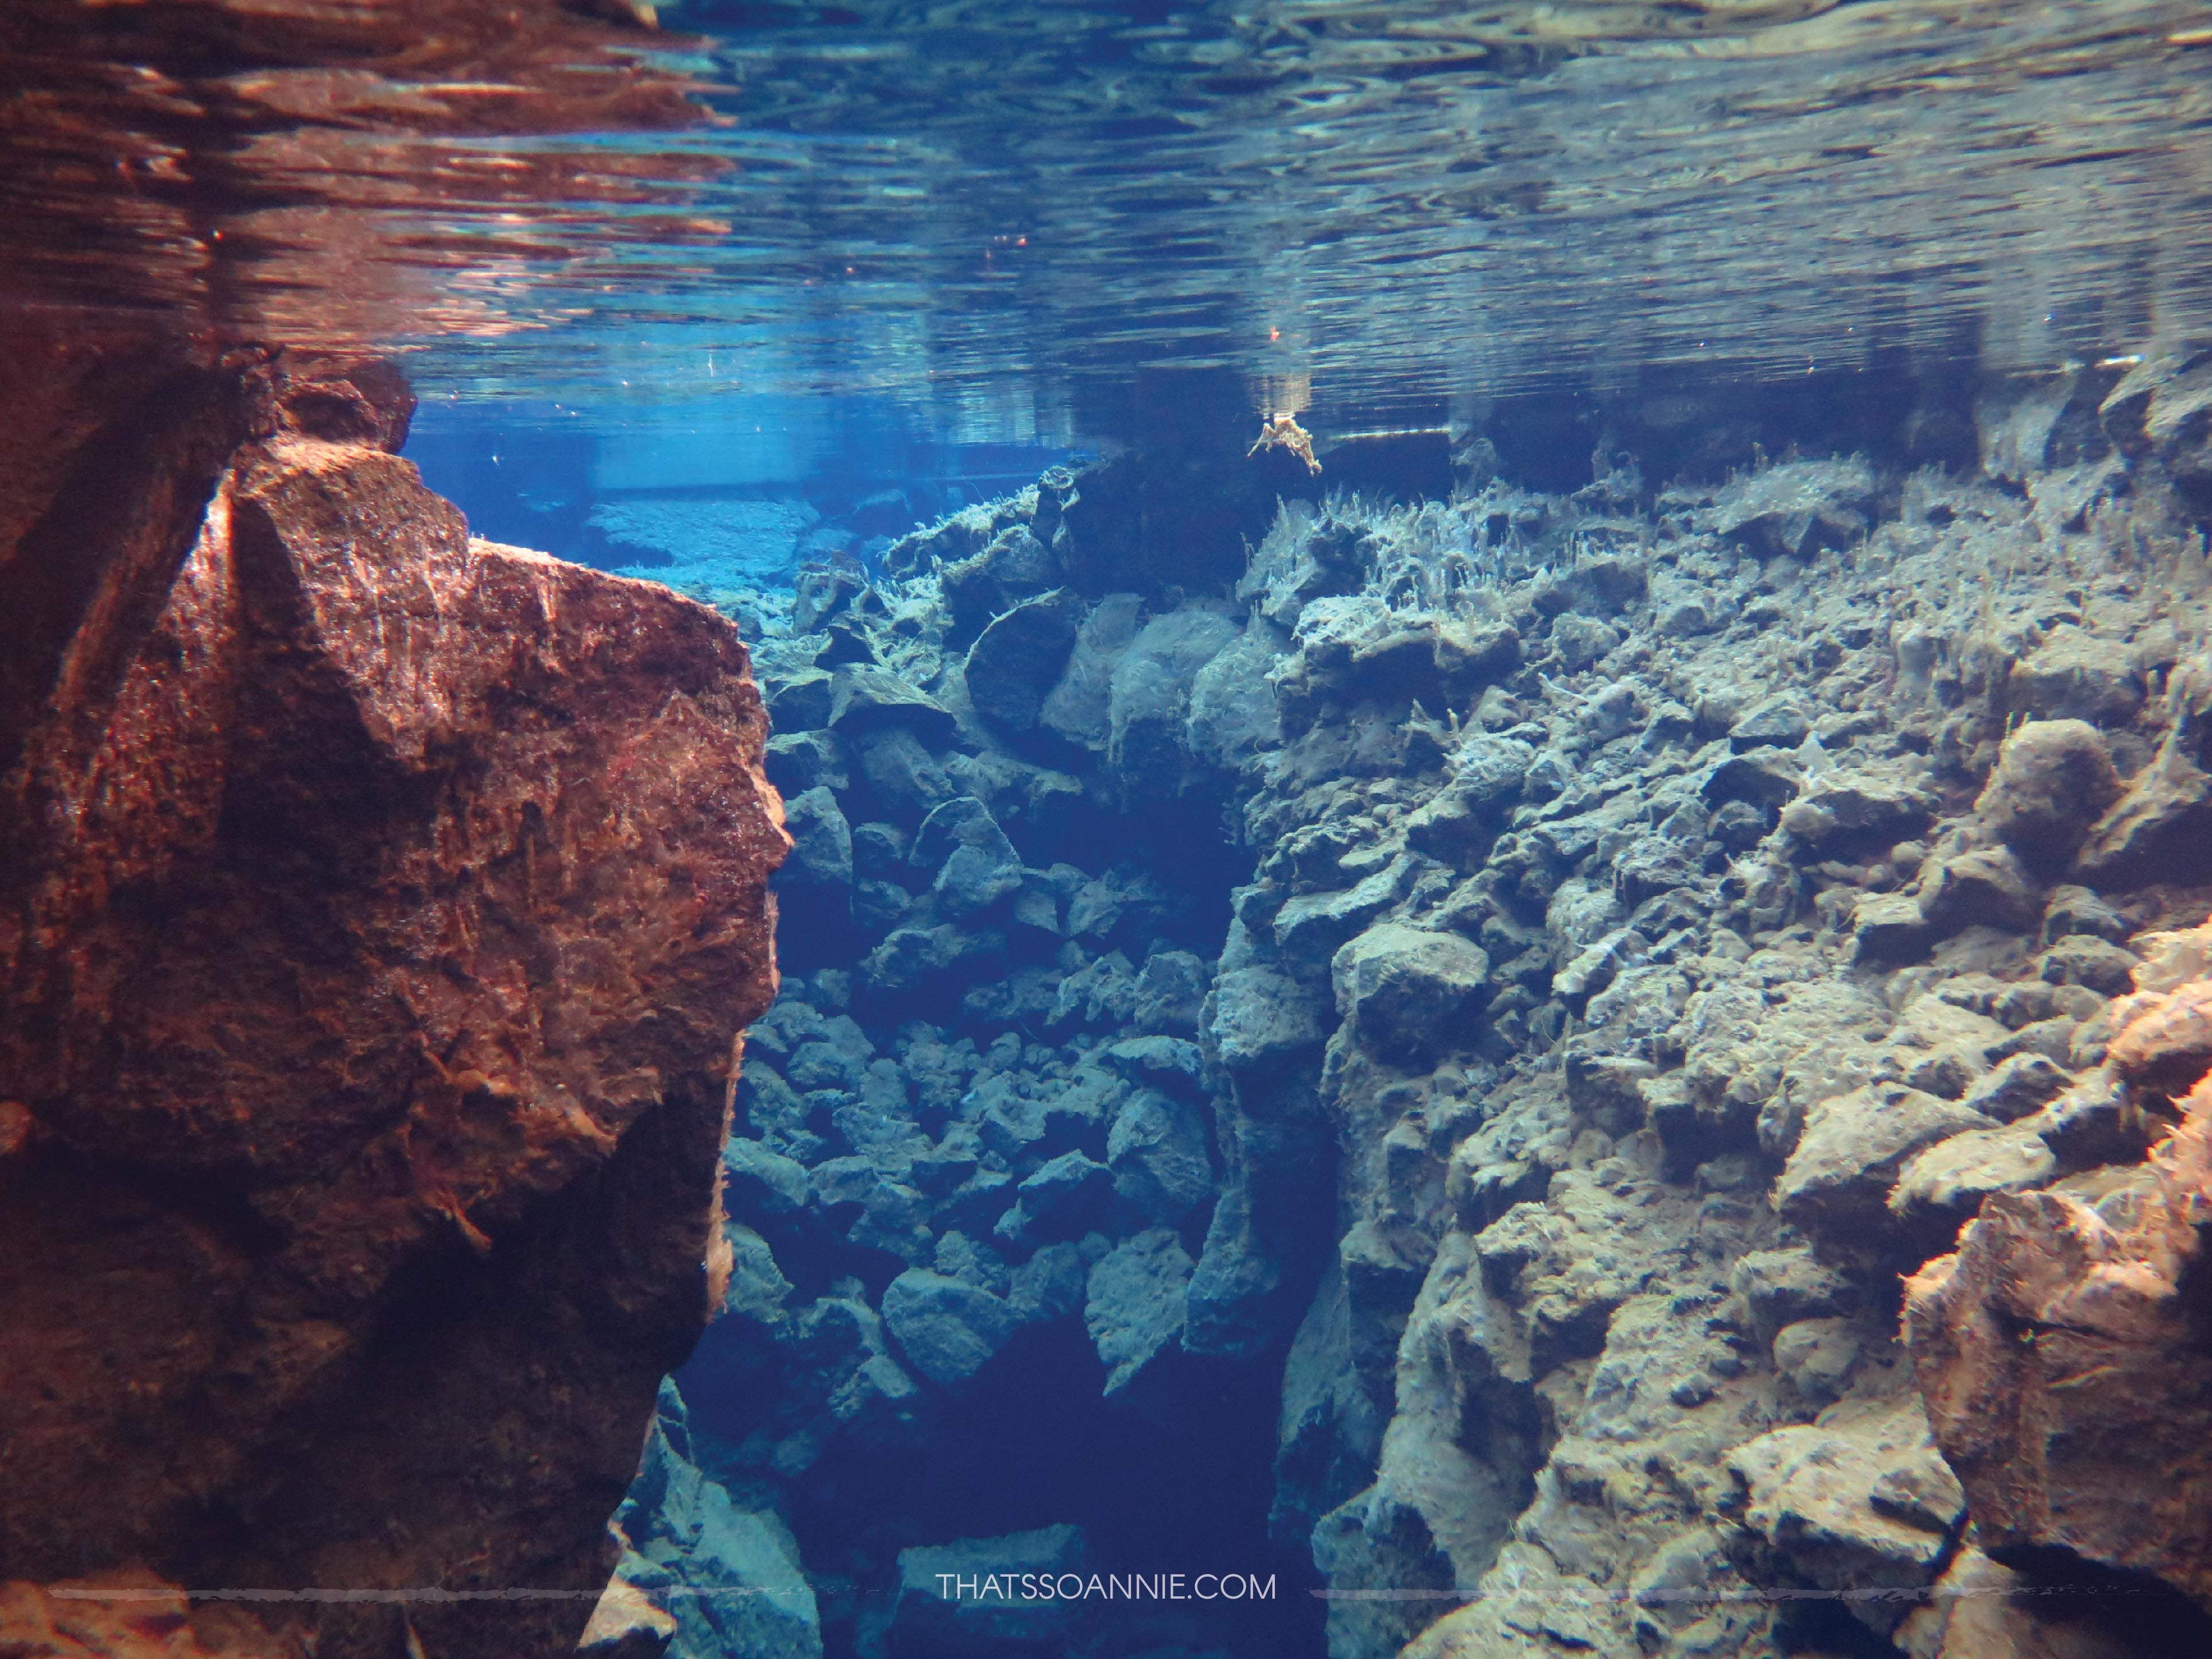 Snorkeling between American and Eurasian Tectonic Plates at Big Crack, Silfra Fissure, Iceland | www.thatssoannie.com